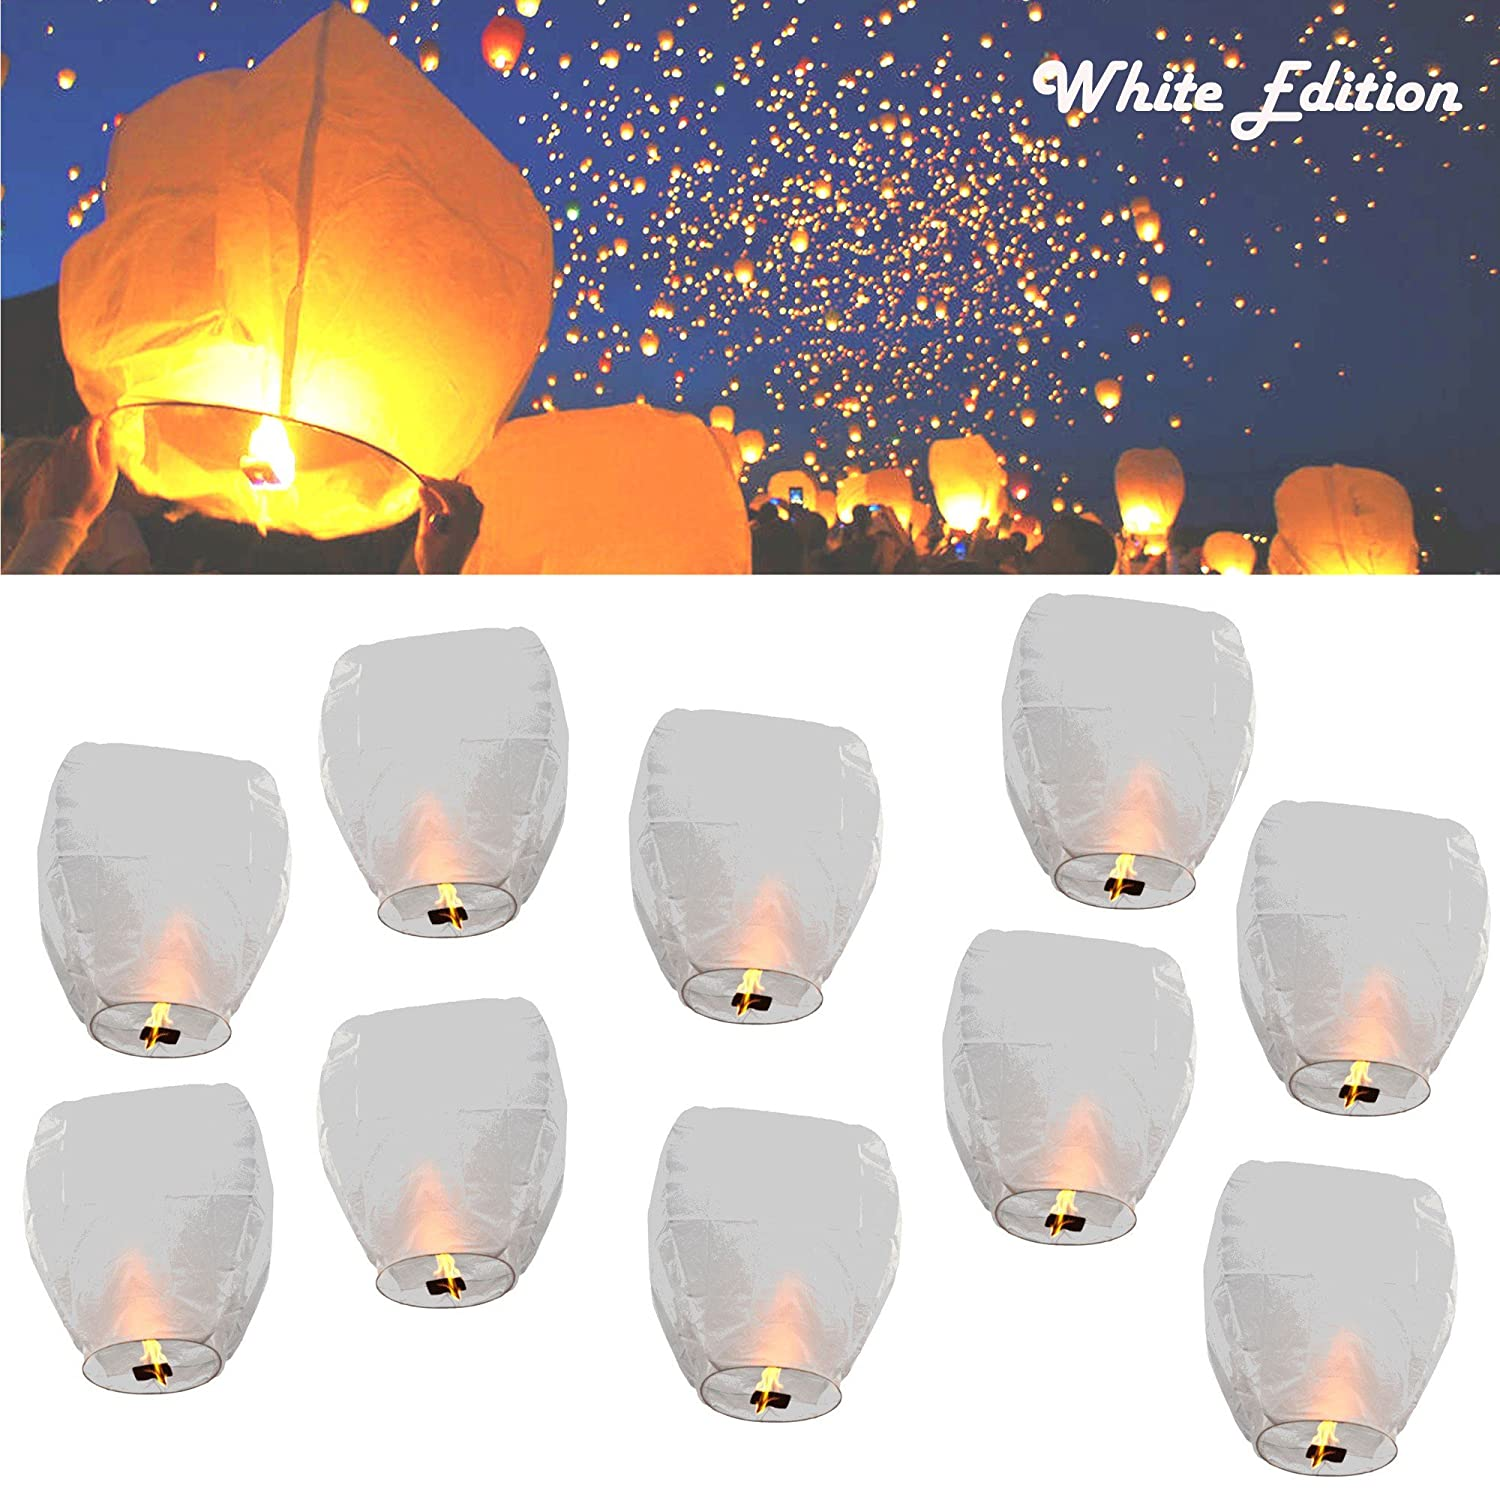 MEDIA WAVE store Lanterna Volante Bianco Total White Wedding Lanterns mongolfiere Volanti 33 cm (Set 5)